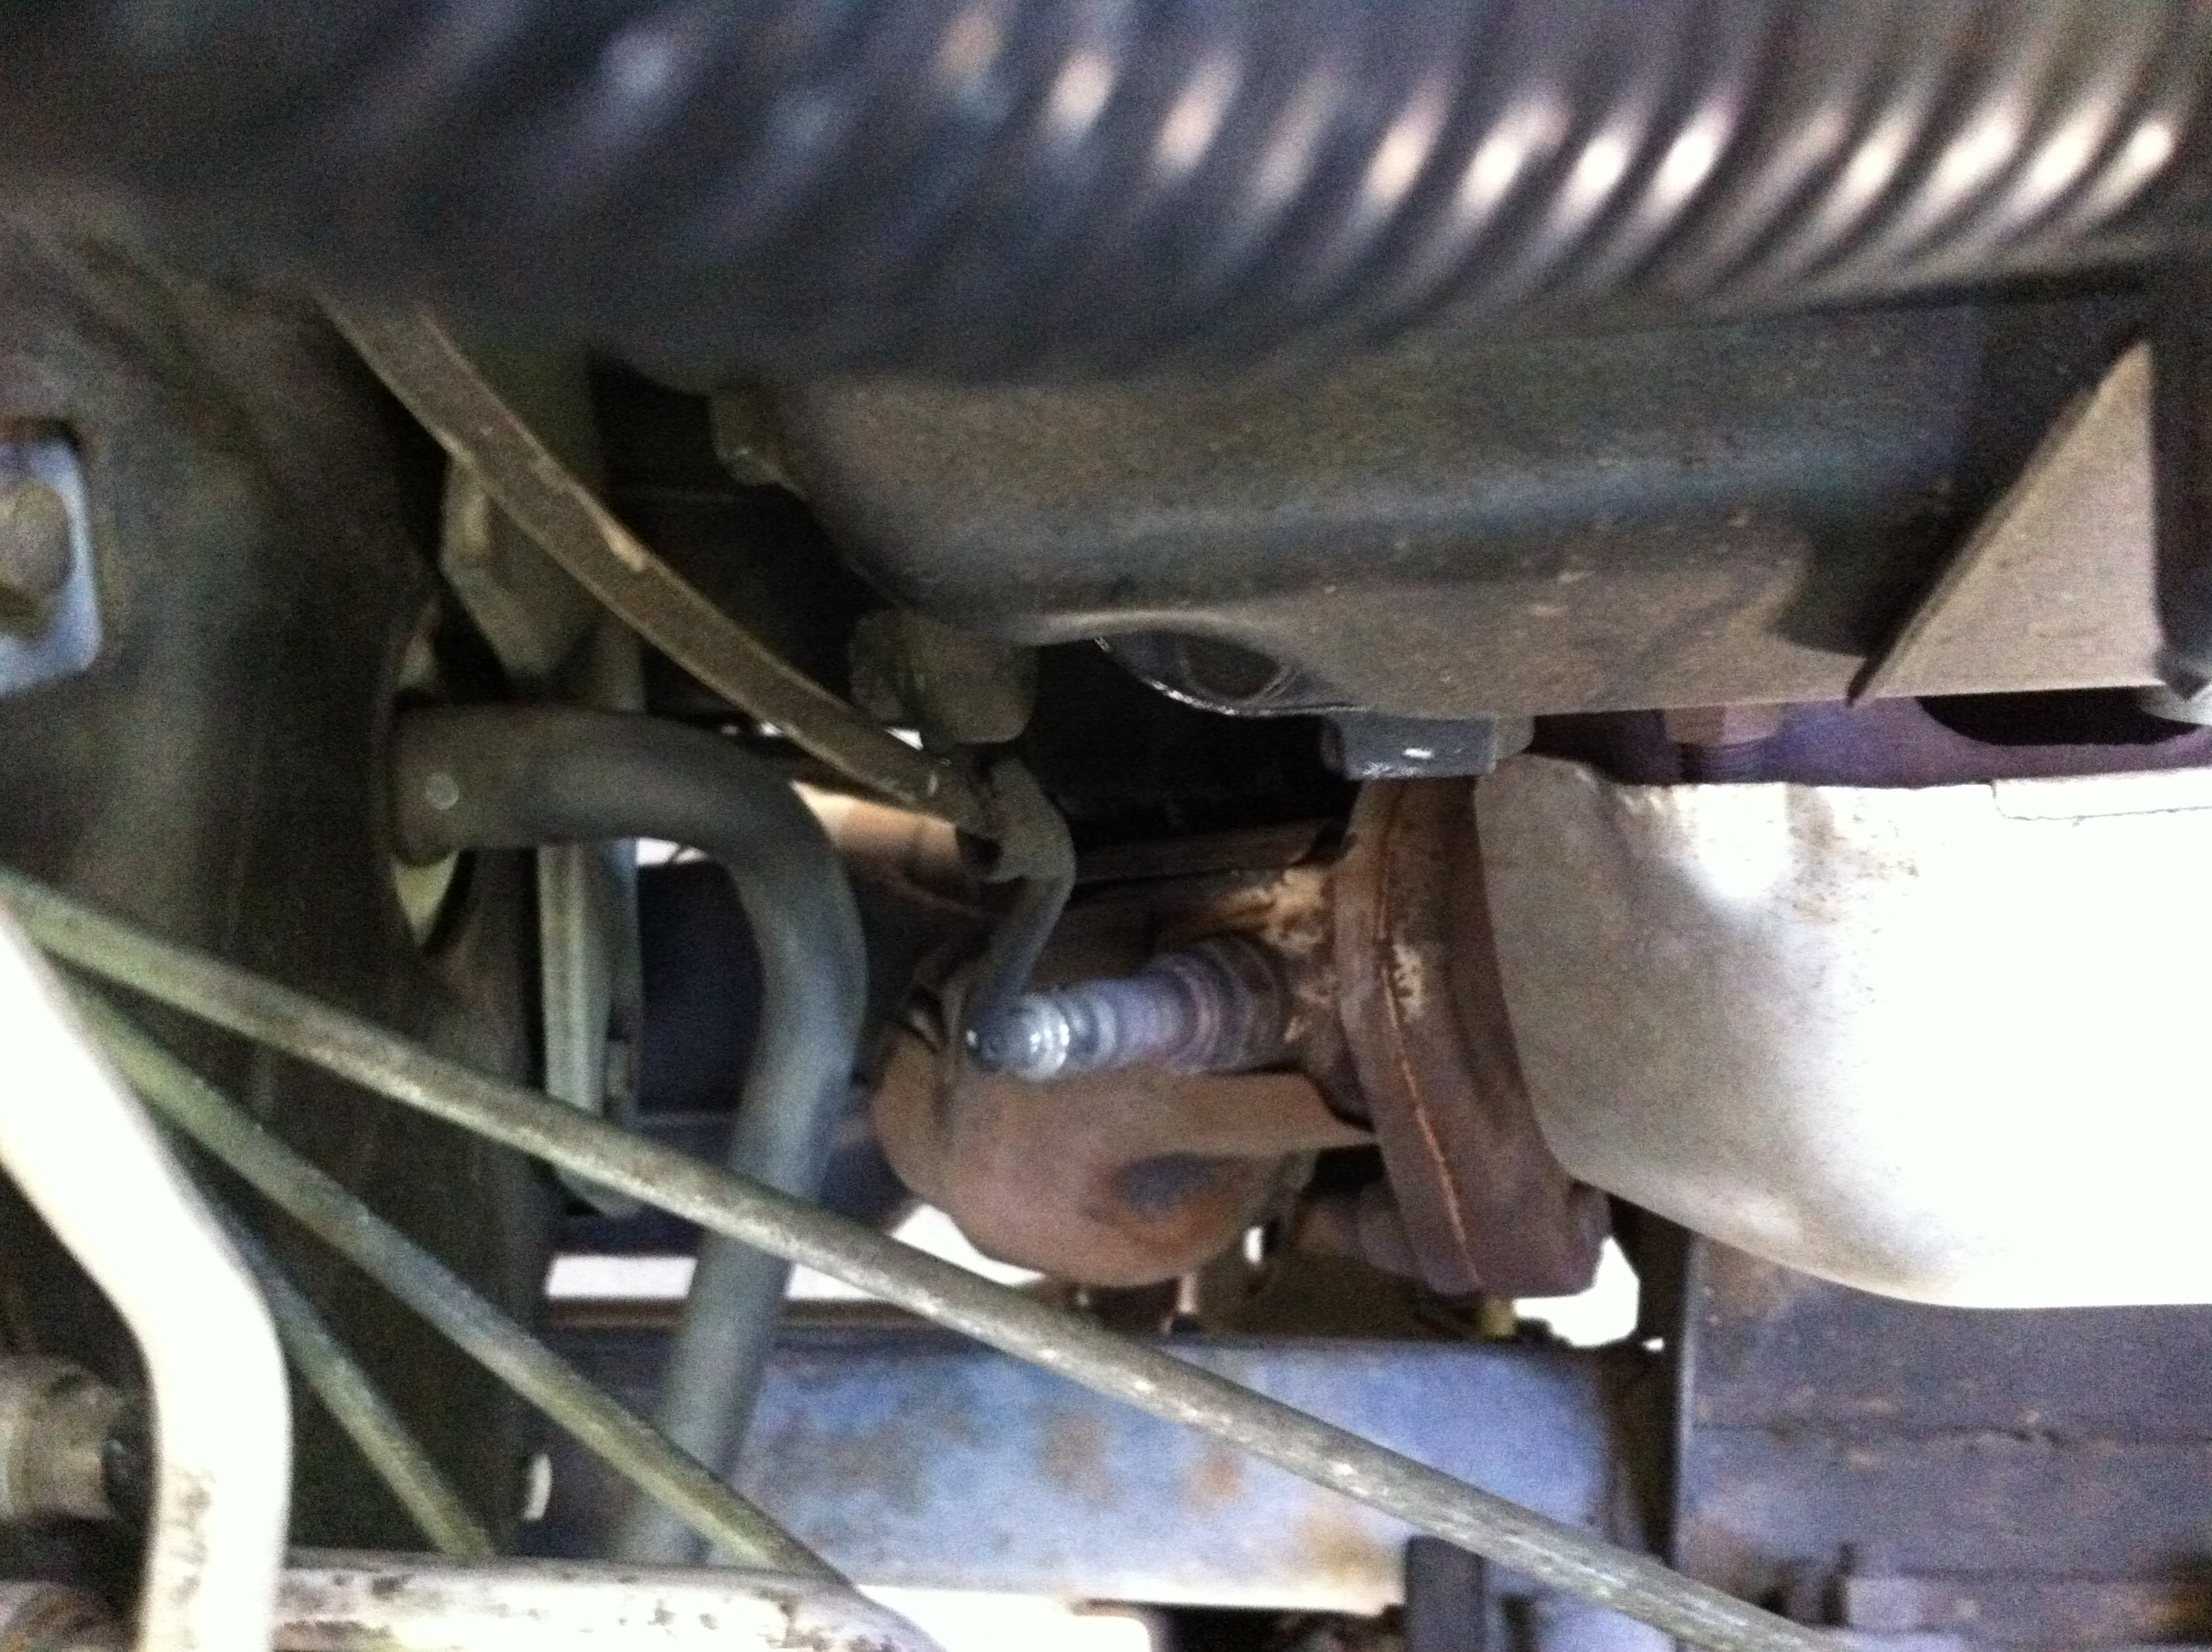 How To Replace Catalytic Converter >> I don't have the original manual for my 1999 Mitsubishi Montero Sport (V6), but I'd like to ...